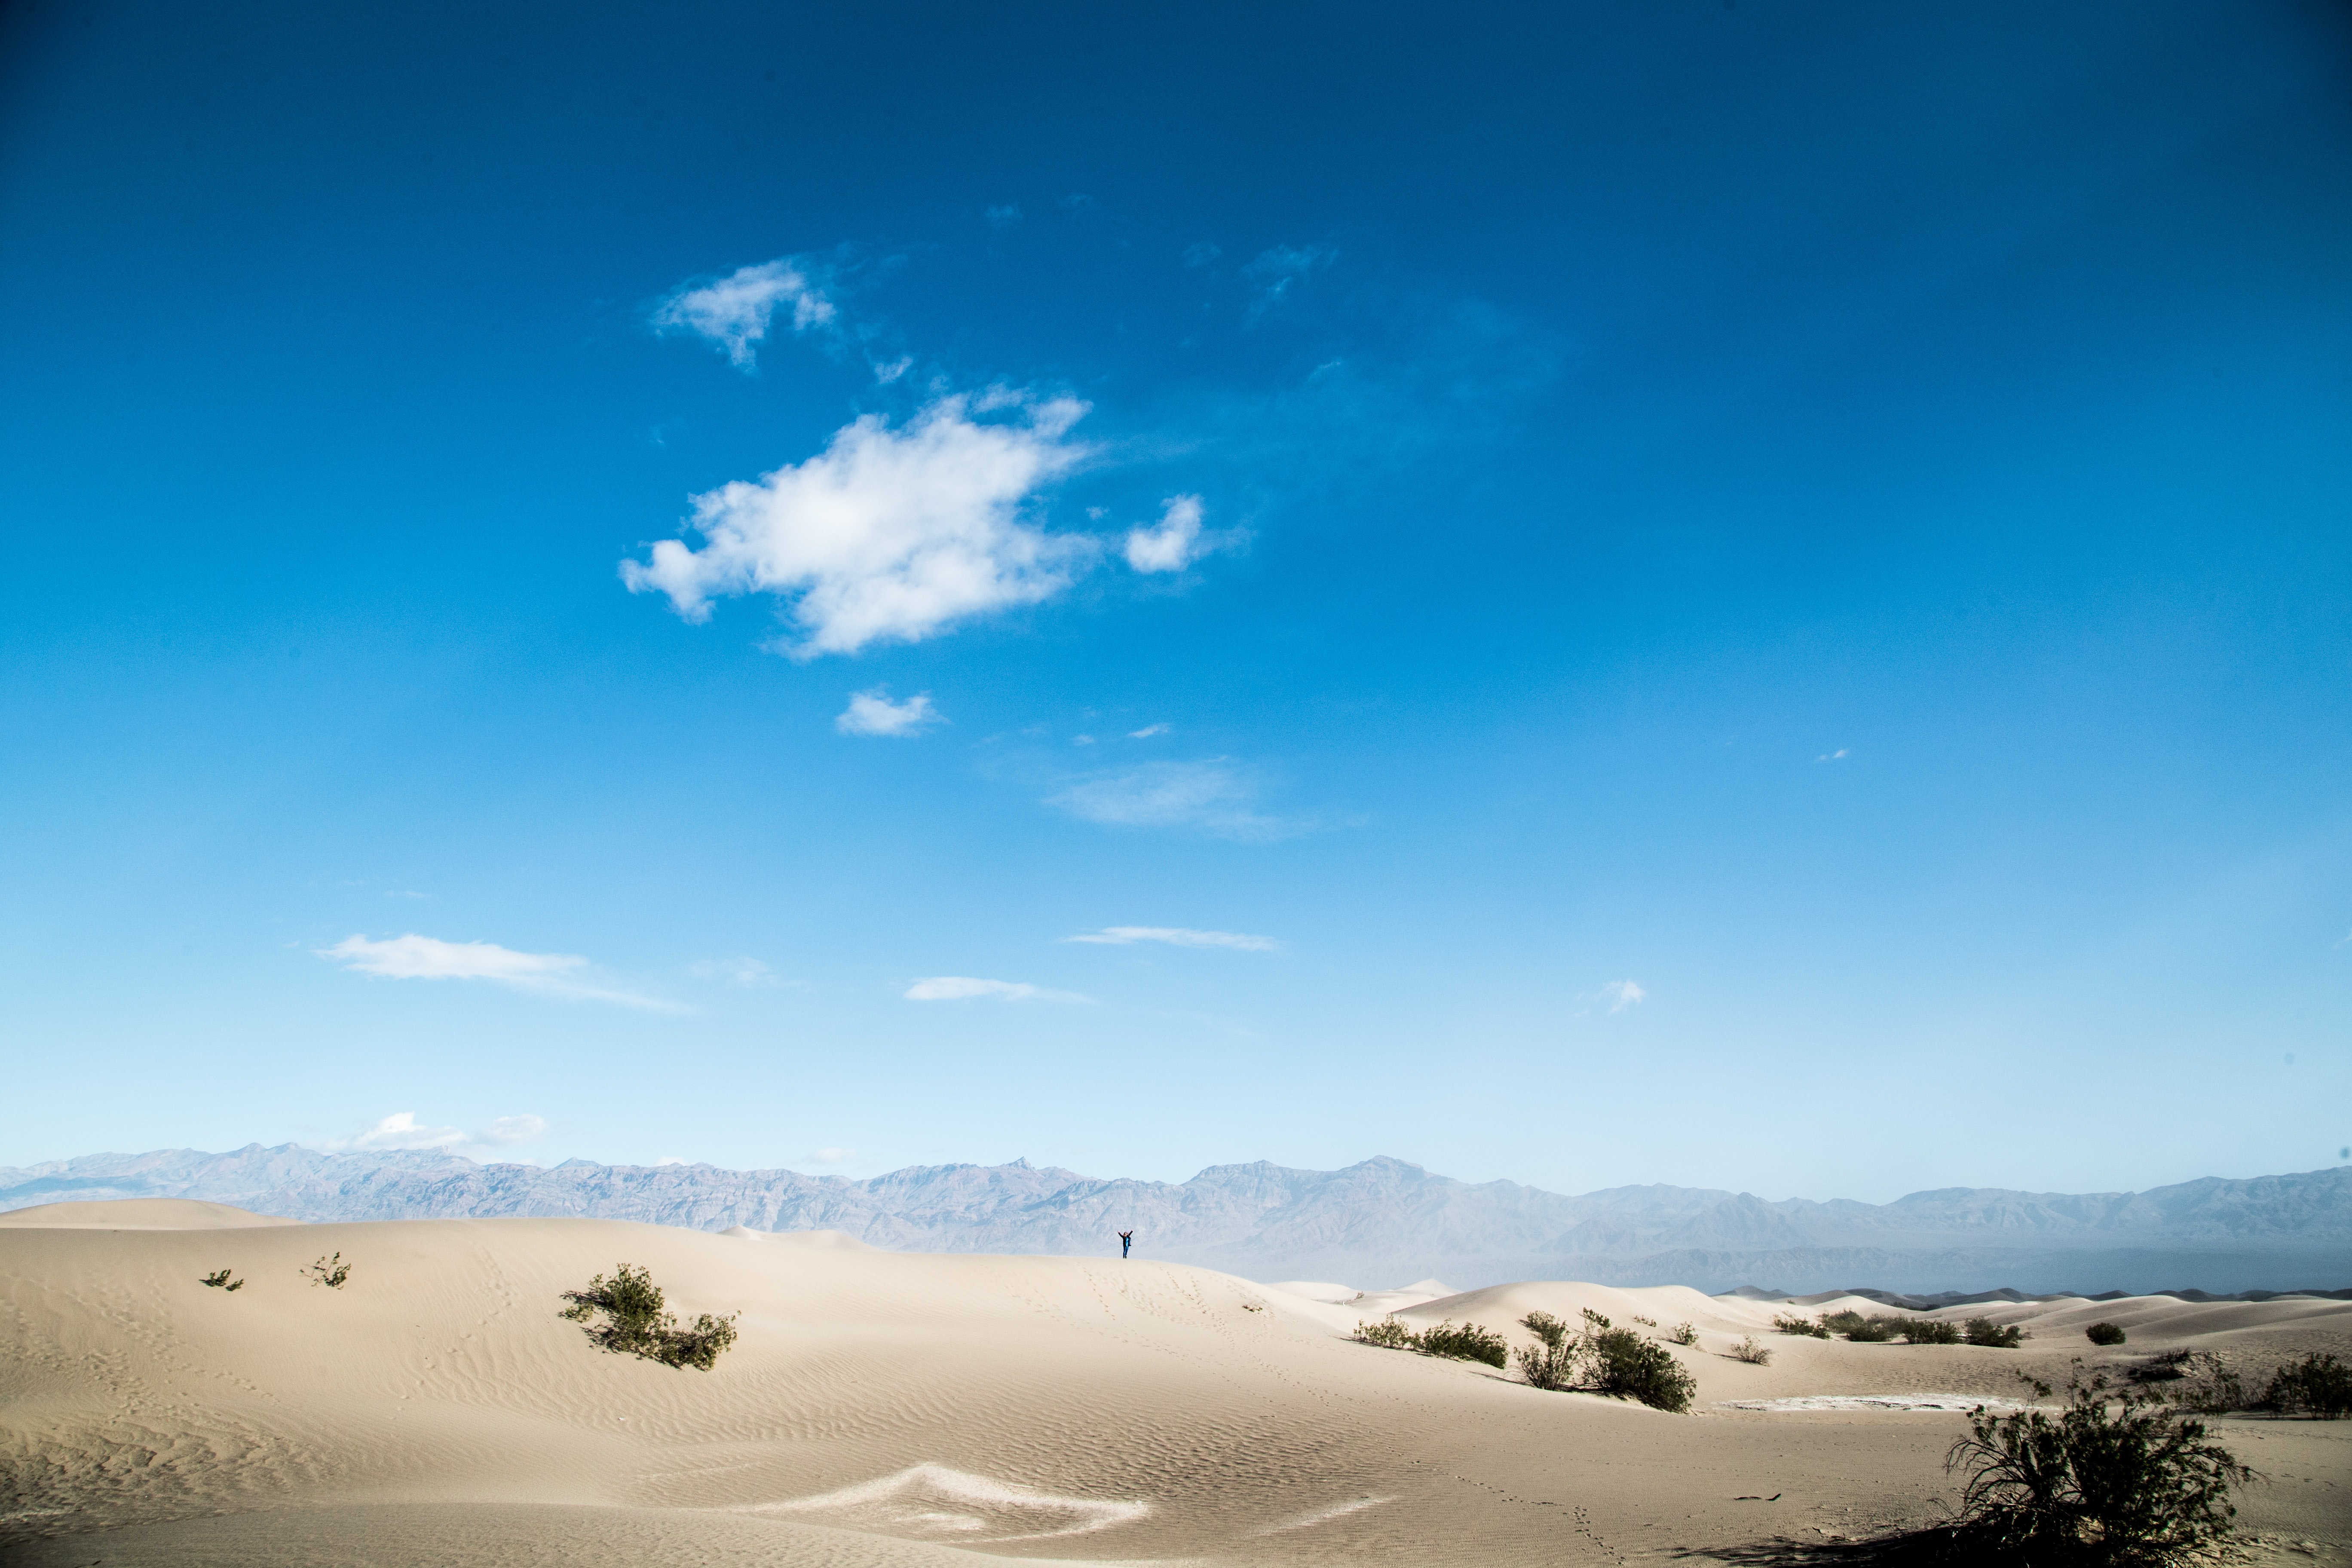 desert under blue sky and white clouds at daytime